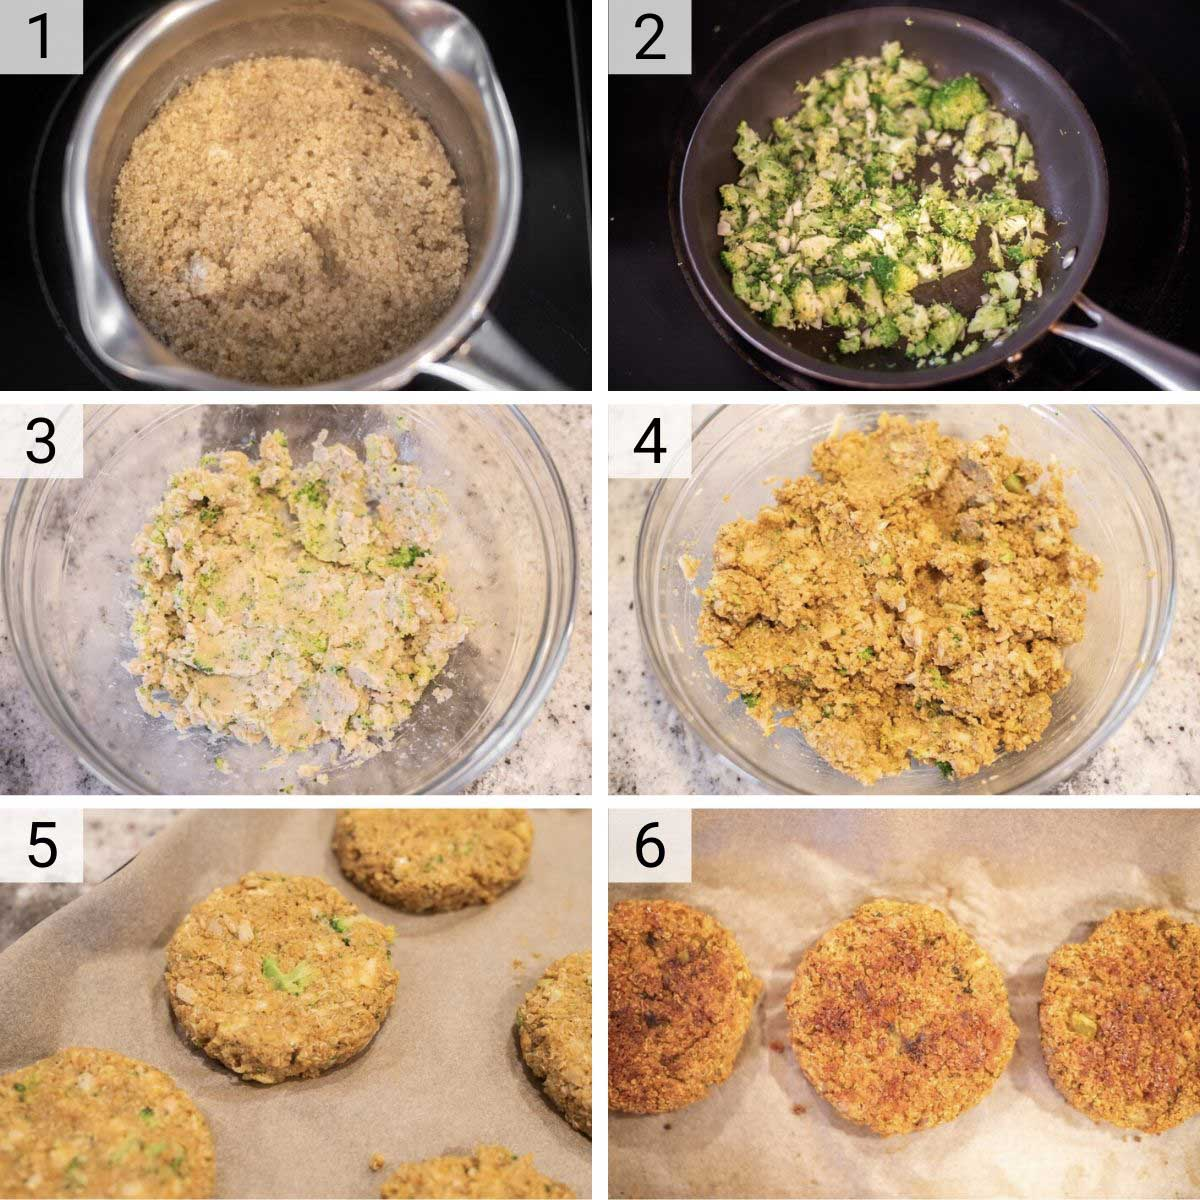 process shots of how to make quinoa burgers